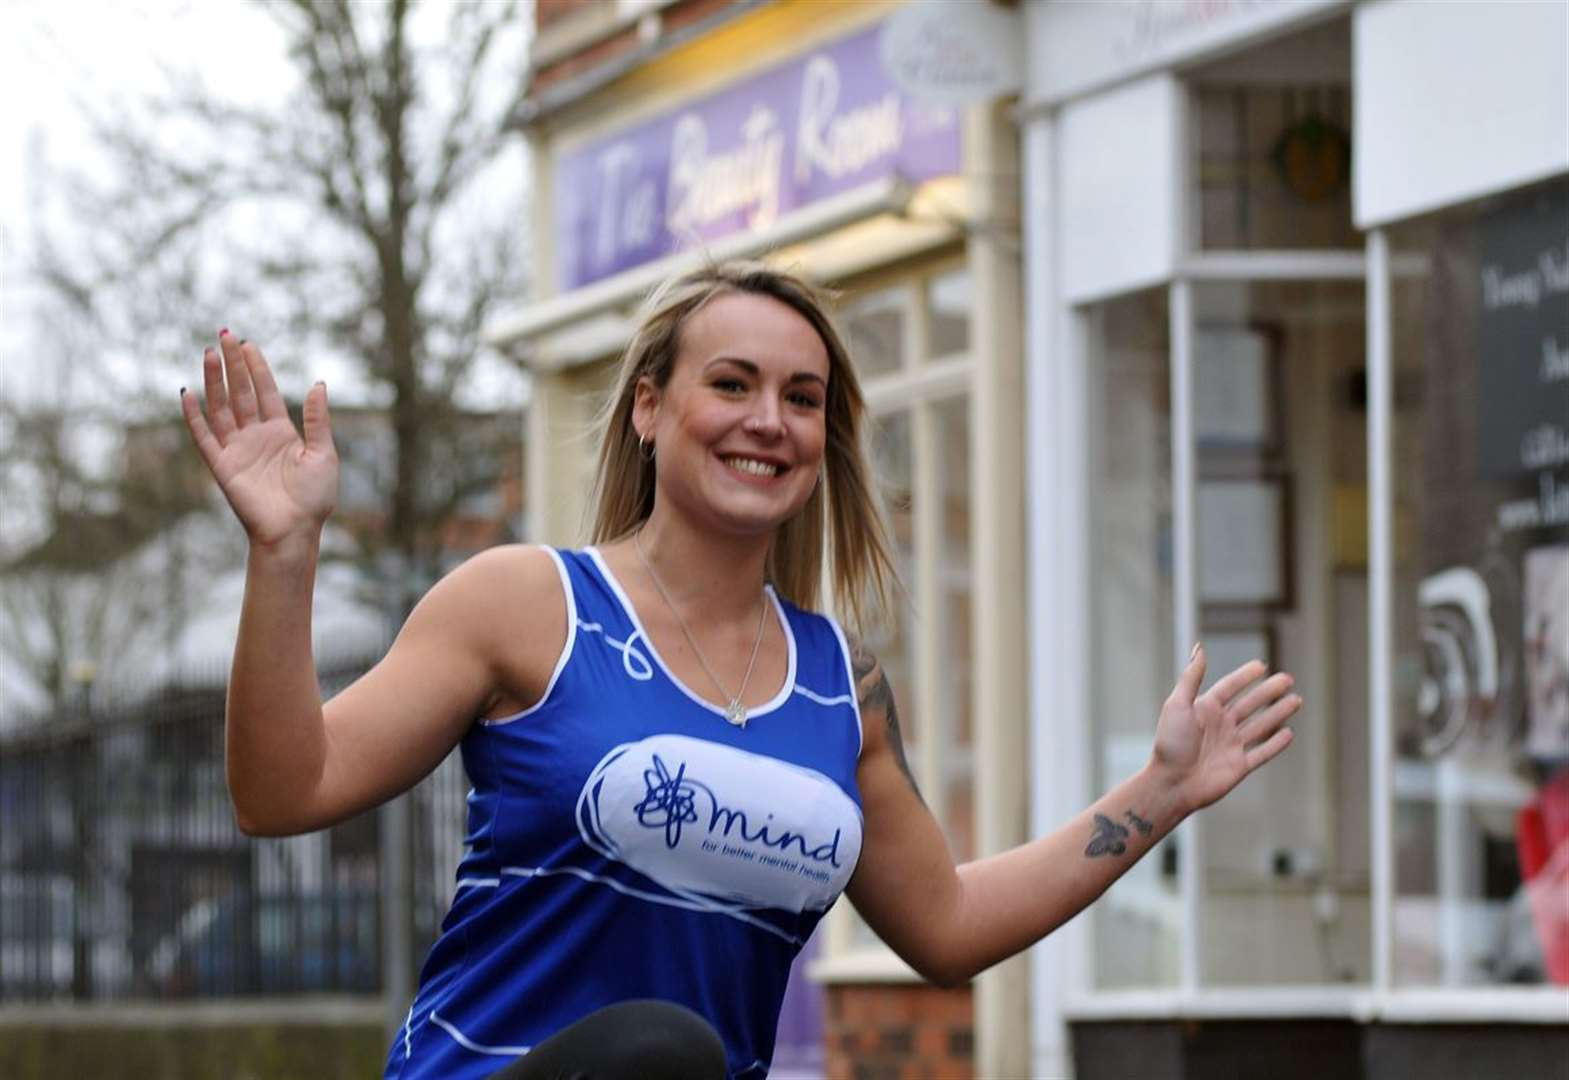 Beauty therapist to run marathon for mental health charity